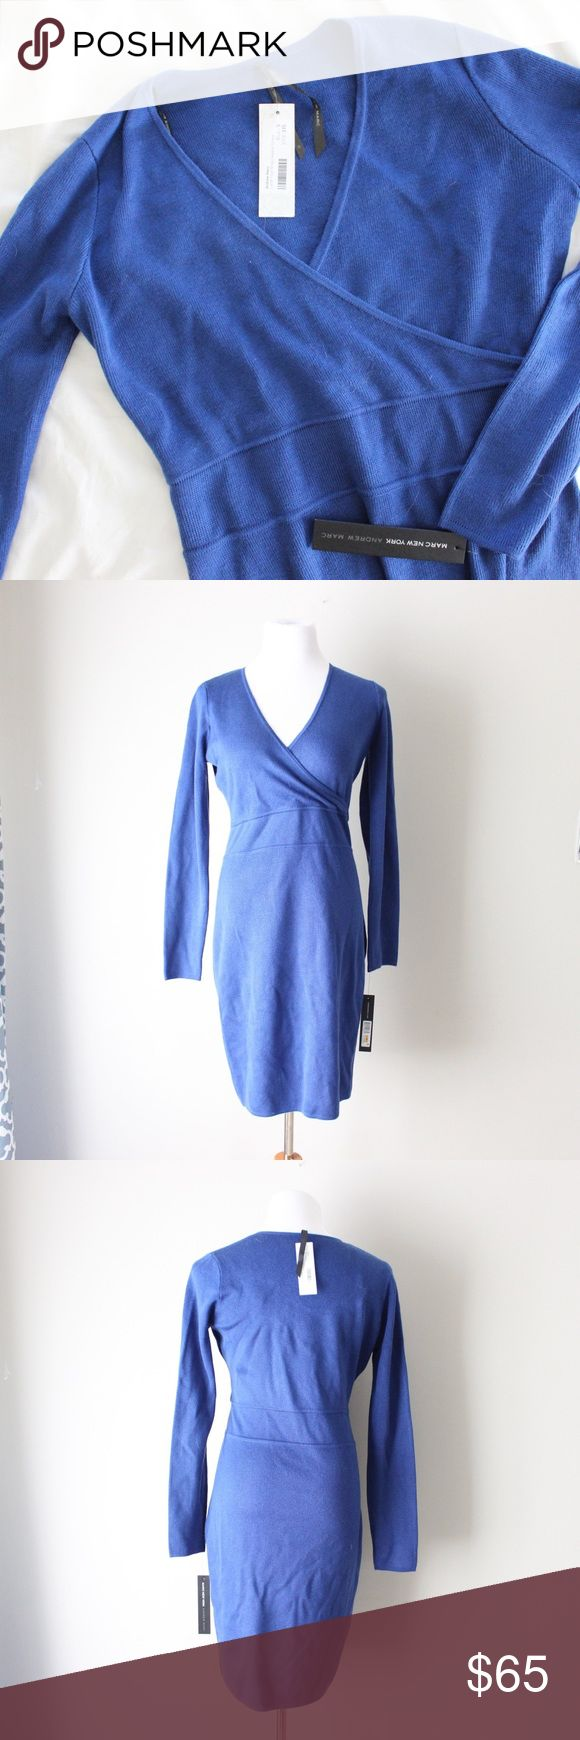 Andrew Marc Faux Wrap Sweater Dress Andrew Marc Knit royal blue sweater dress with tags. Originally from Stitchfix.  Fits true to size.  Shown on a size 4/6 mannequin.  In gently used condition, no flaws.  Measurements available upon request.  All orders shipped same or next business day! Andrew Marc Dresses Long Sleeve